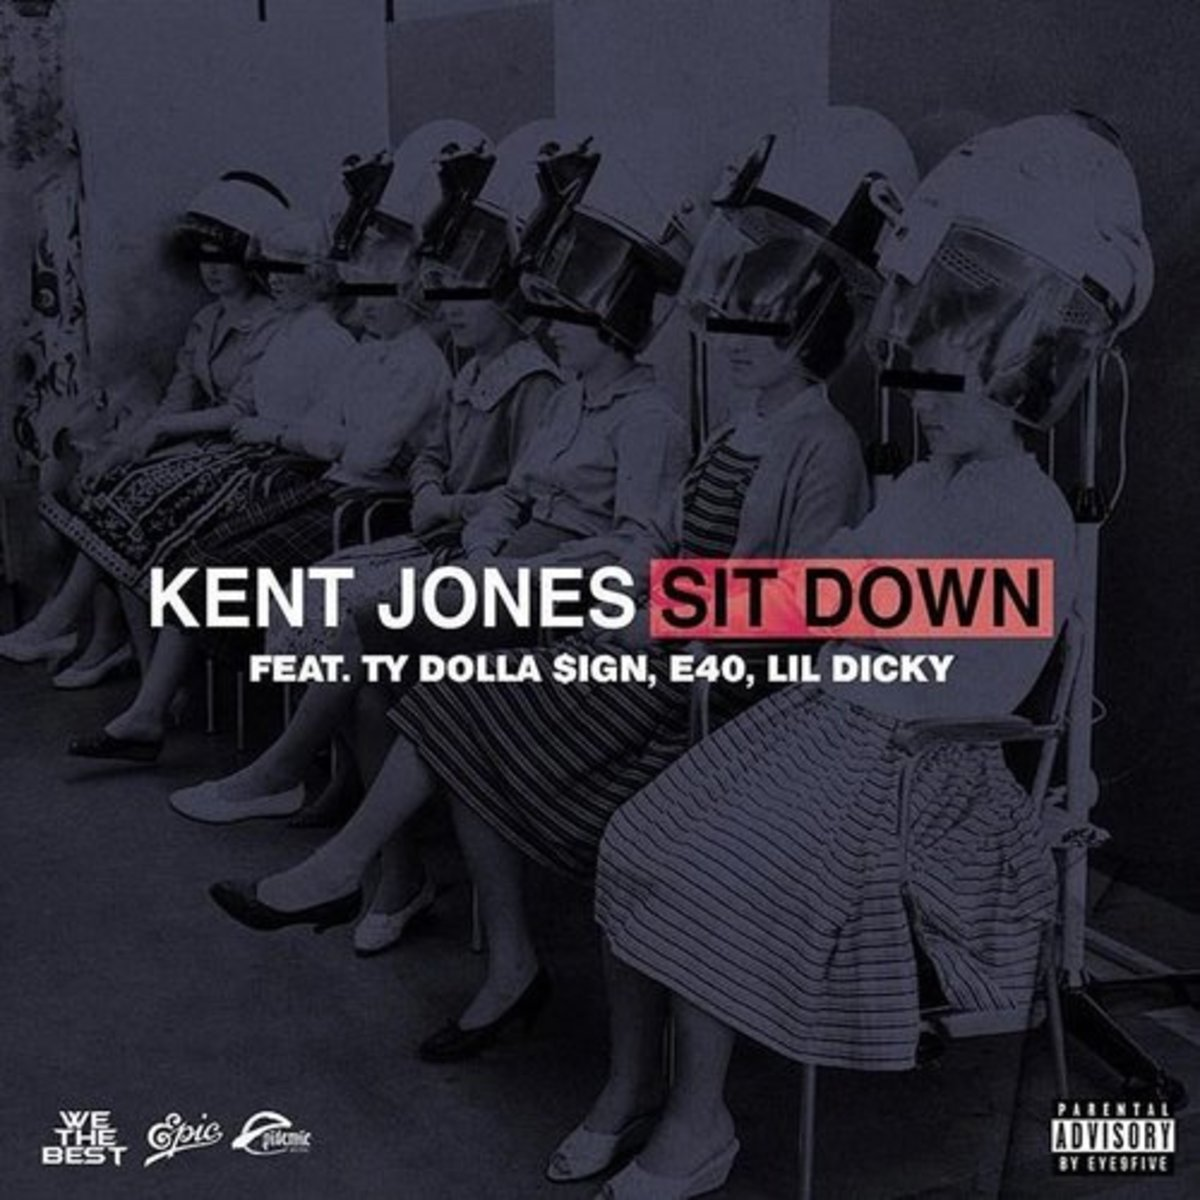 kent-jones-sit-down.jpg